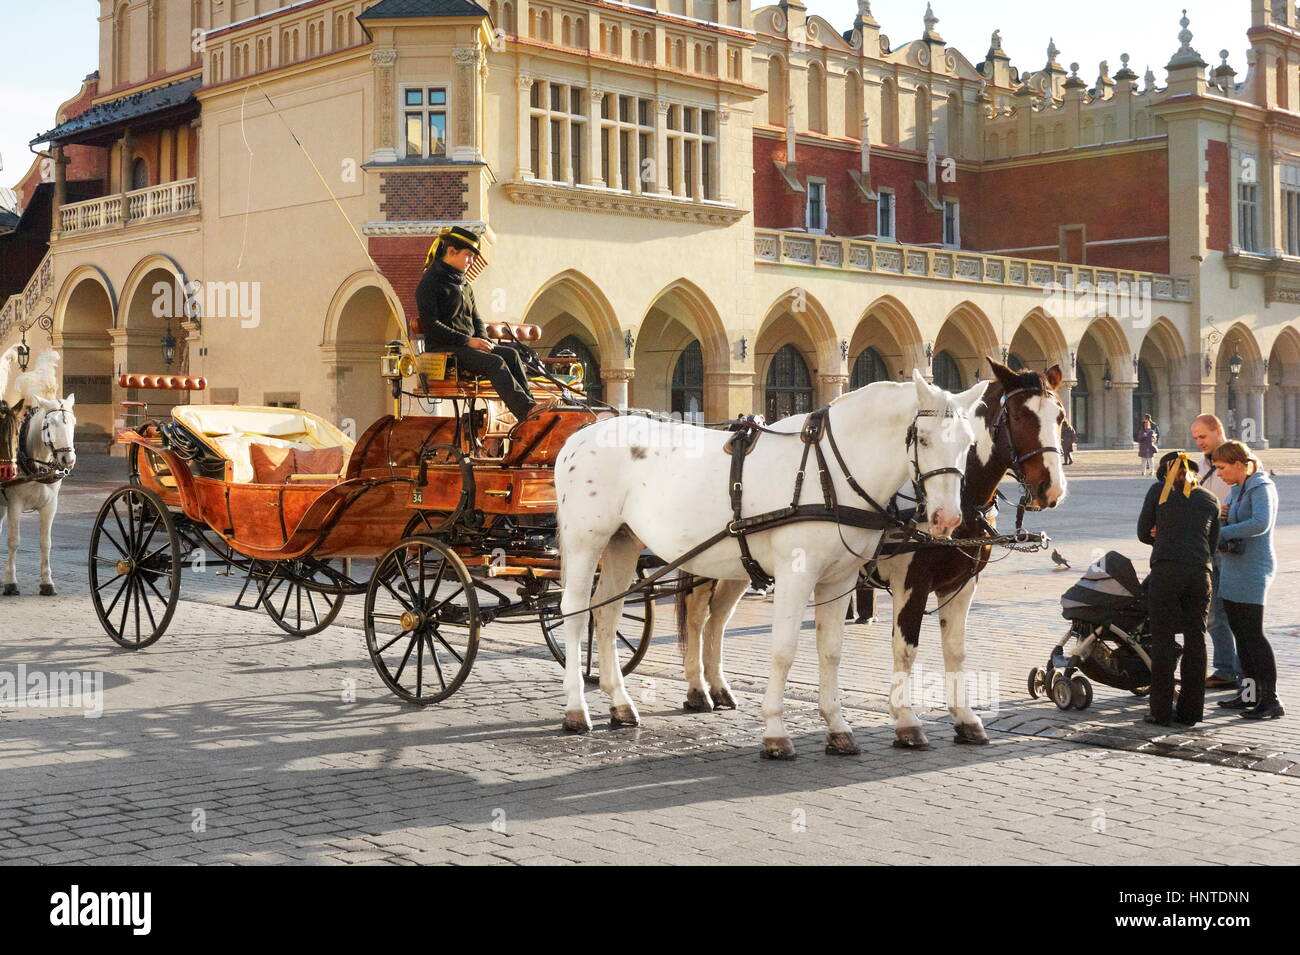 Horse Carriage waiting for tourists, Crackow, Poland - Stock Image